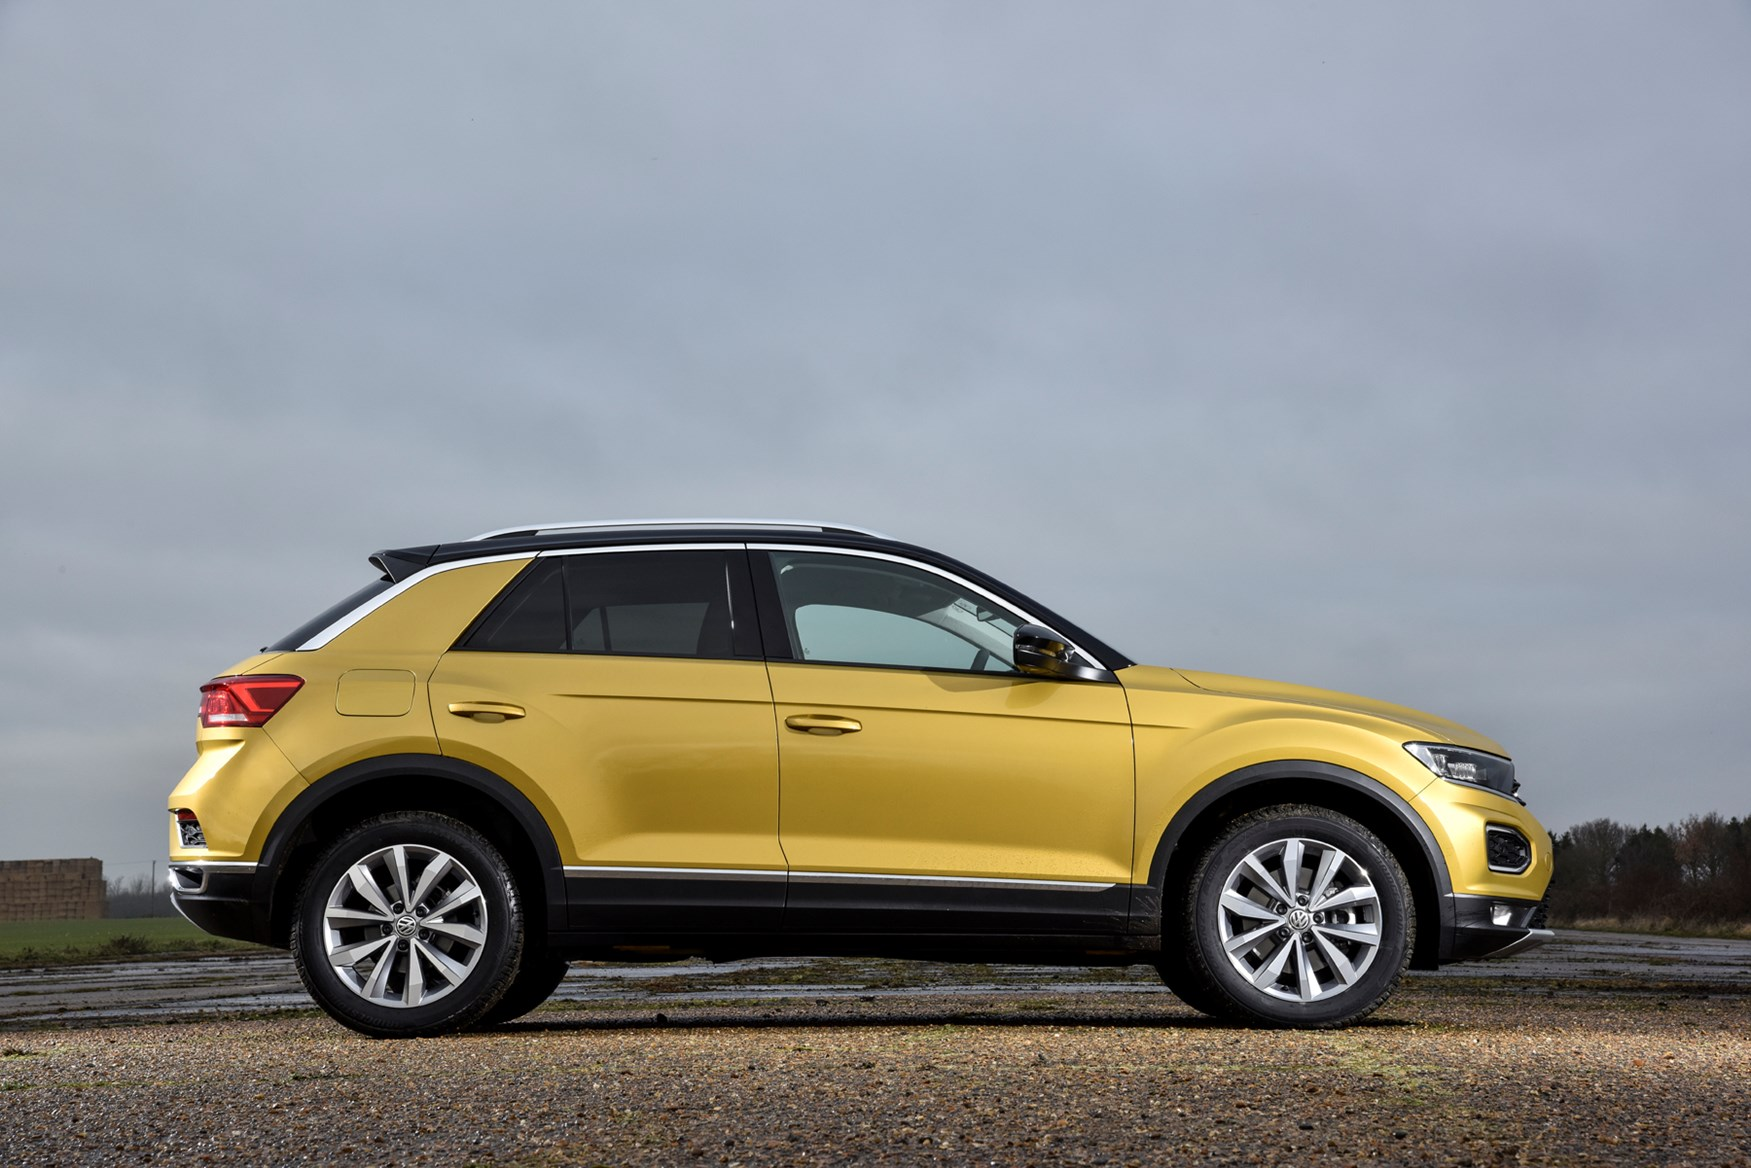 The T-Roc is great to drive